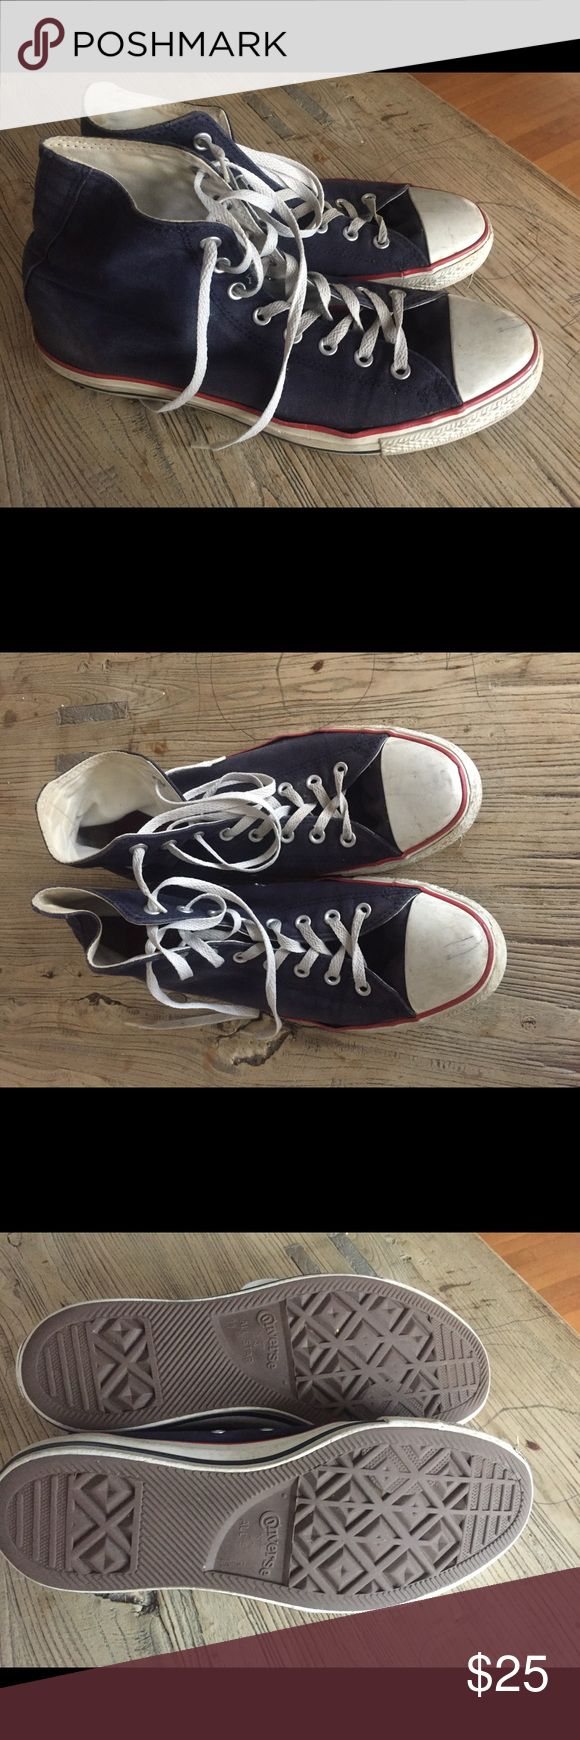 men's converse high tops men's converse high tops size 11 used condition. see pics smoke free home Converse Shoes Sneakers